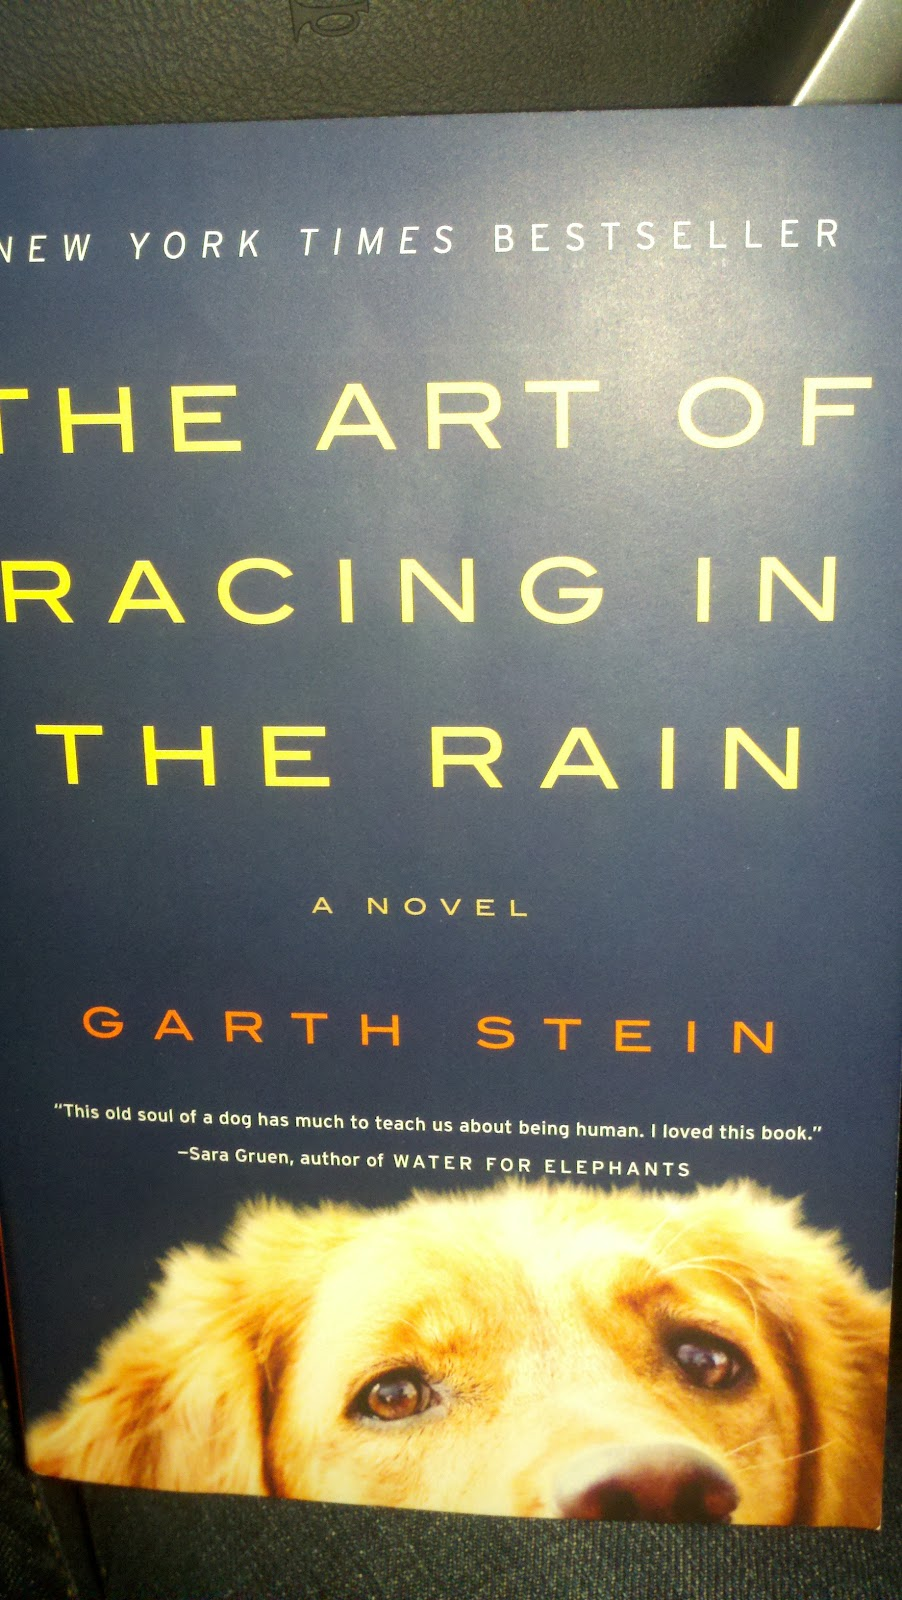 The Art Of Racing In The Rain: Run: The Art Of Racing In The Rain